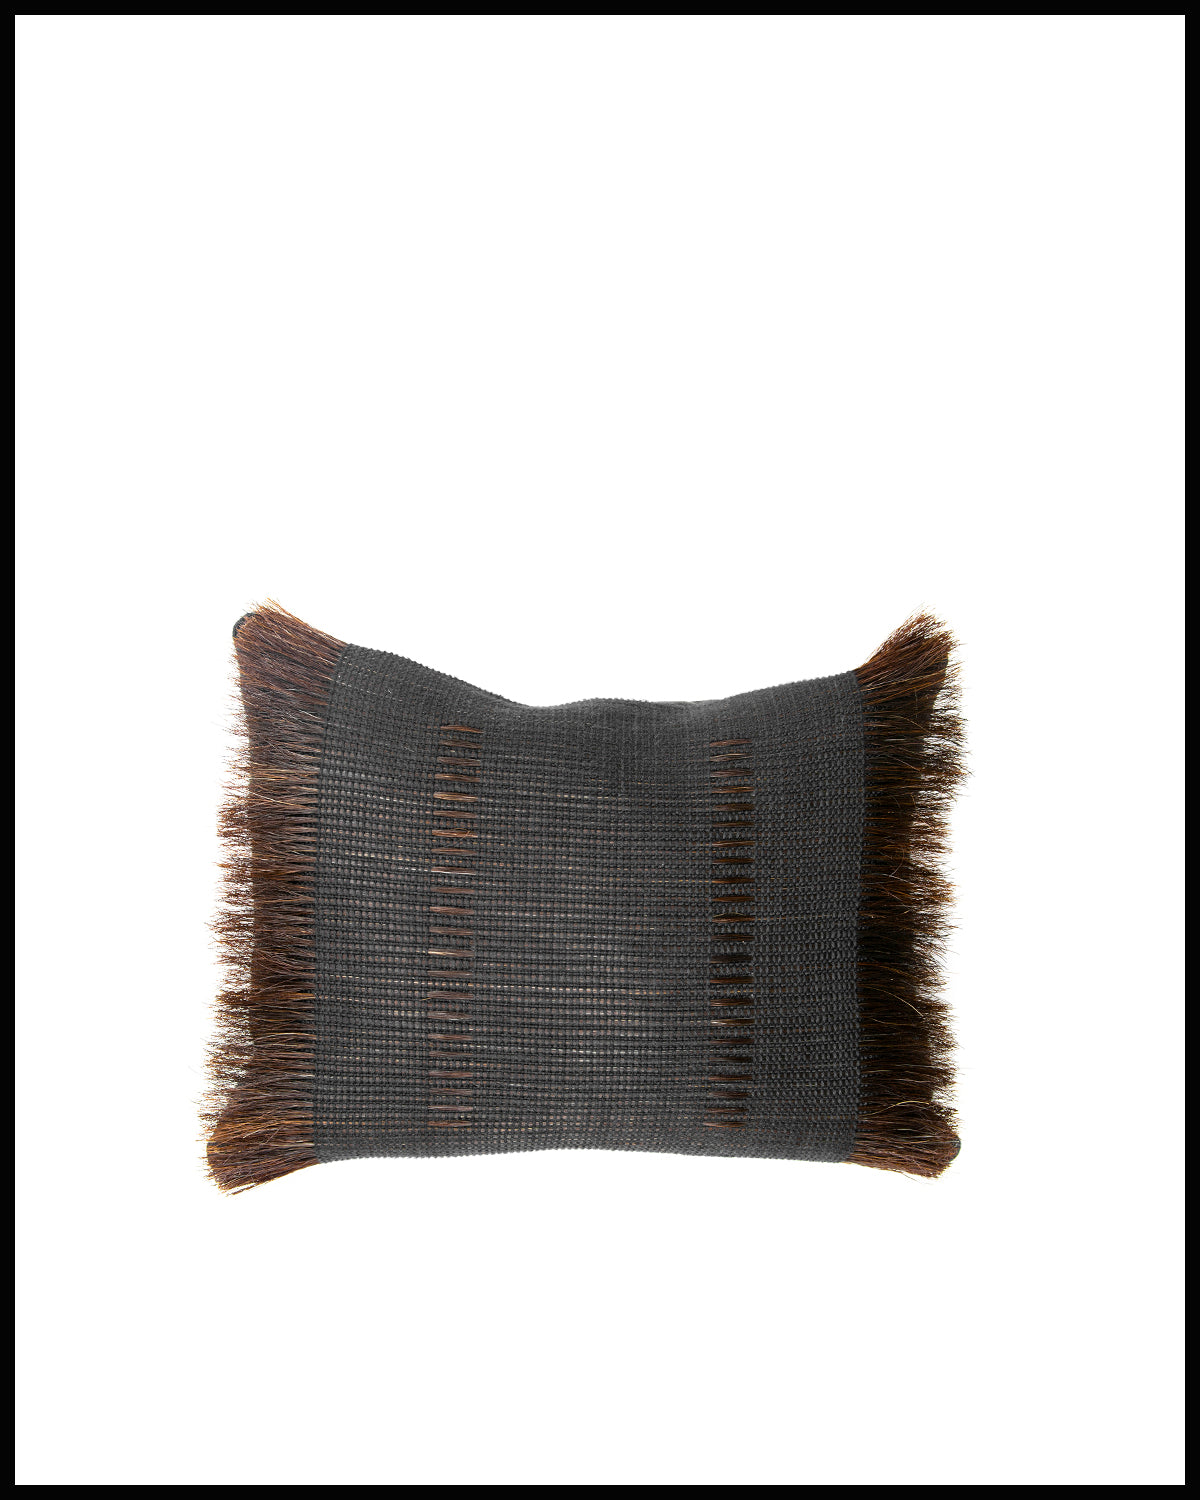 "Woven Horsehair Throw Pillow 12"" x 16"""